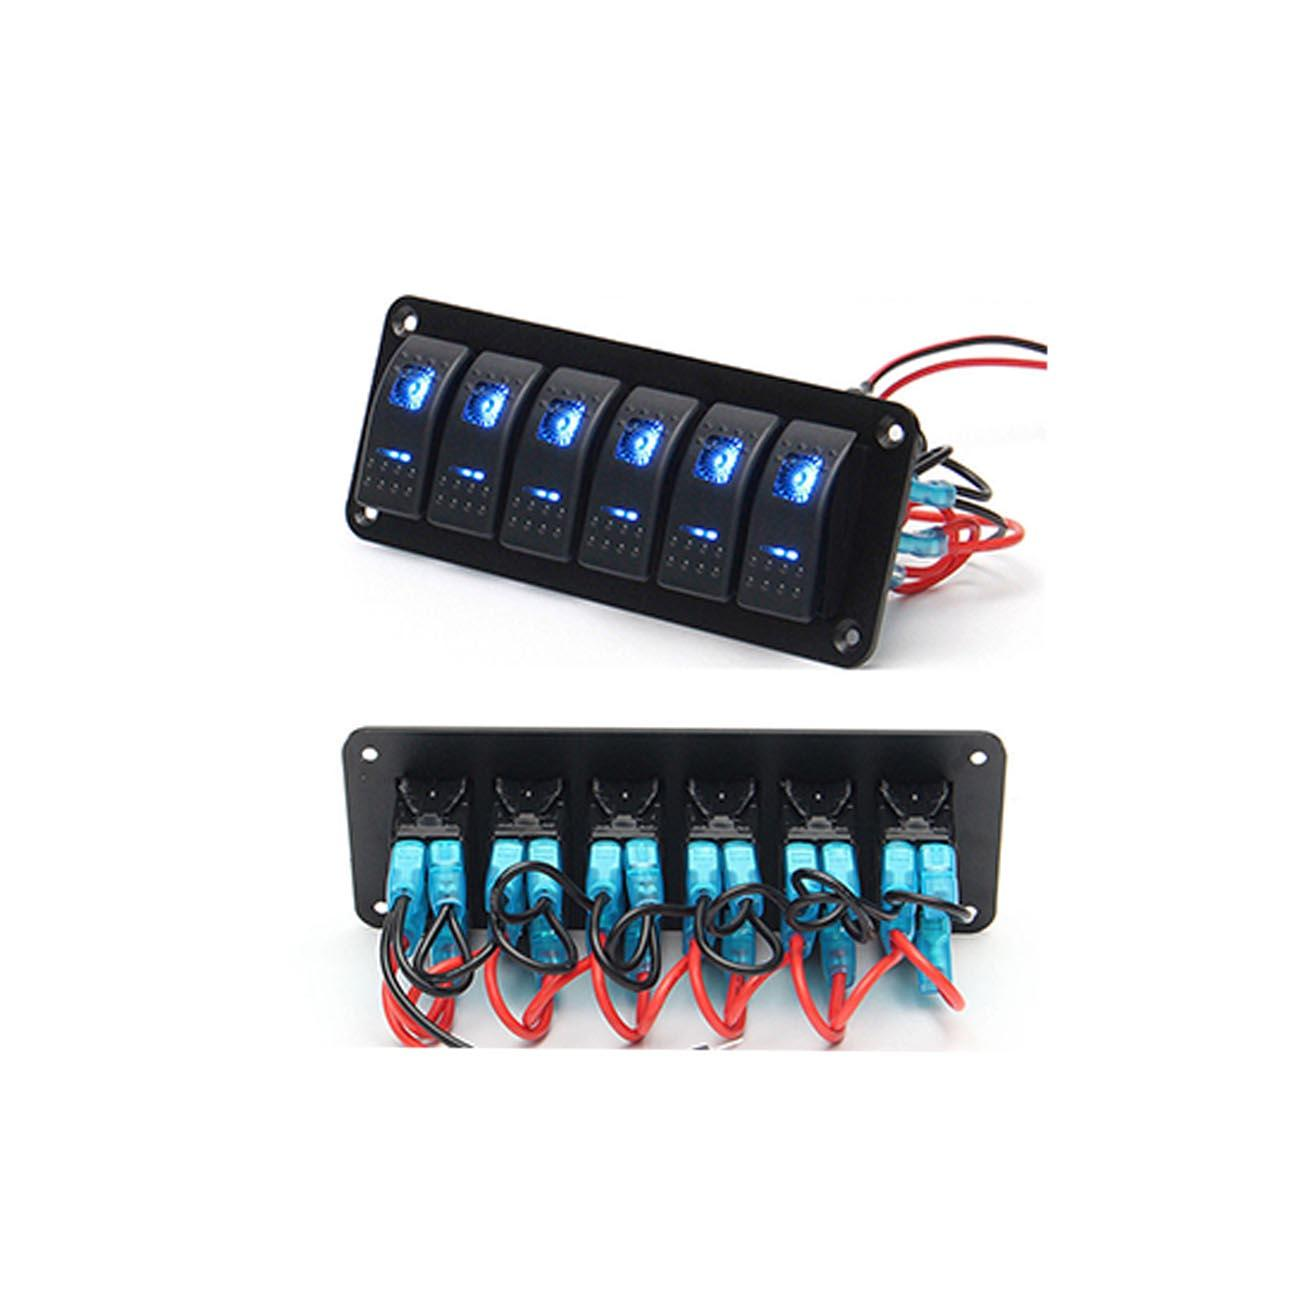 6 Gang Rocker Switch Panel Circuit Breaker Led Voltmeter Rv Car More Circuits Driver Hobby Category List Email Product Display